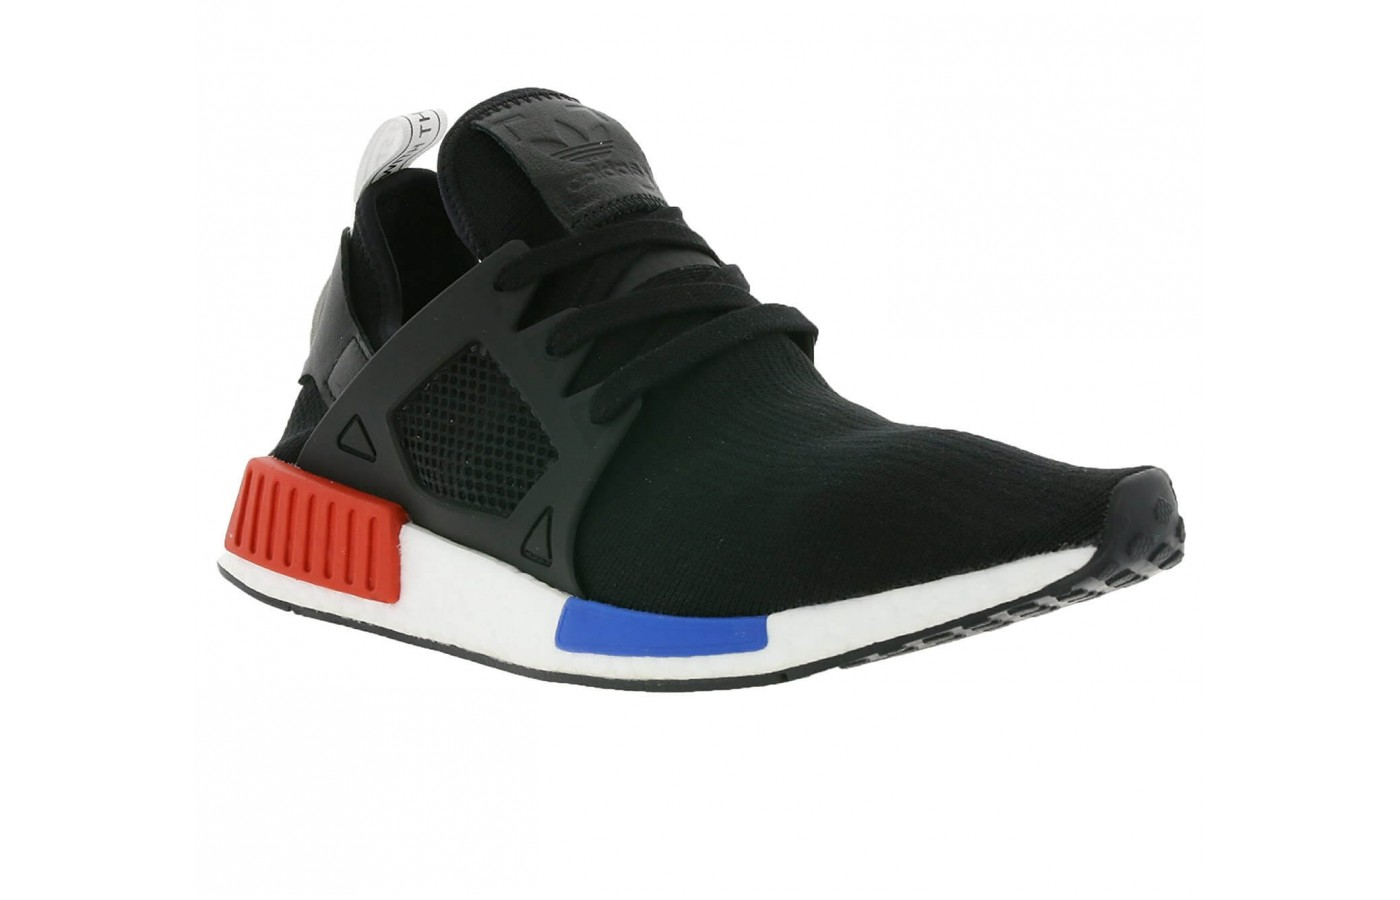 ae4bf3a8582d3 Adidas NMD XR1ed for Performance and Quality - May 2019